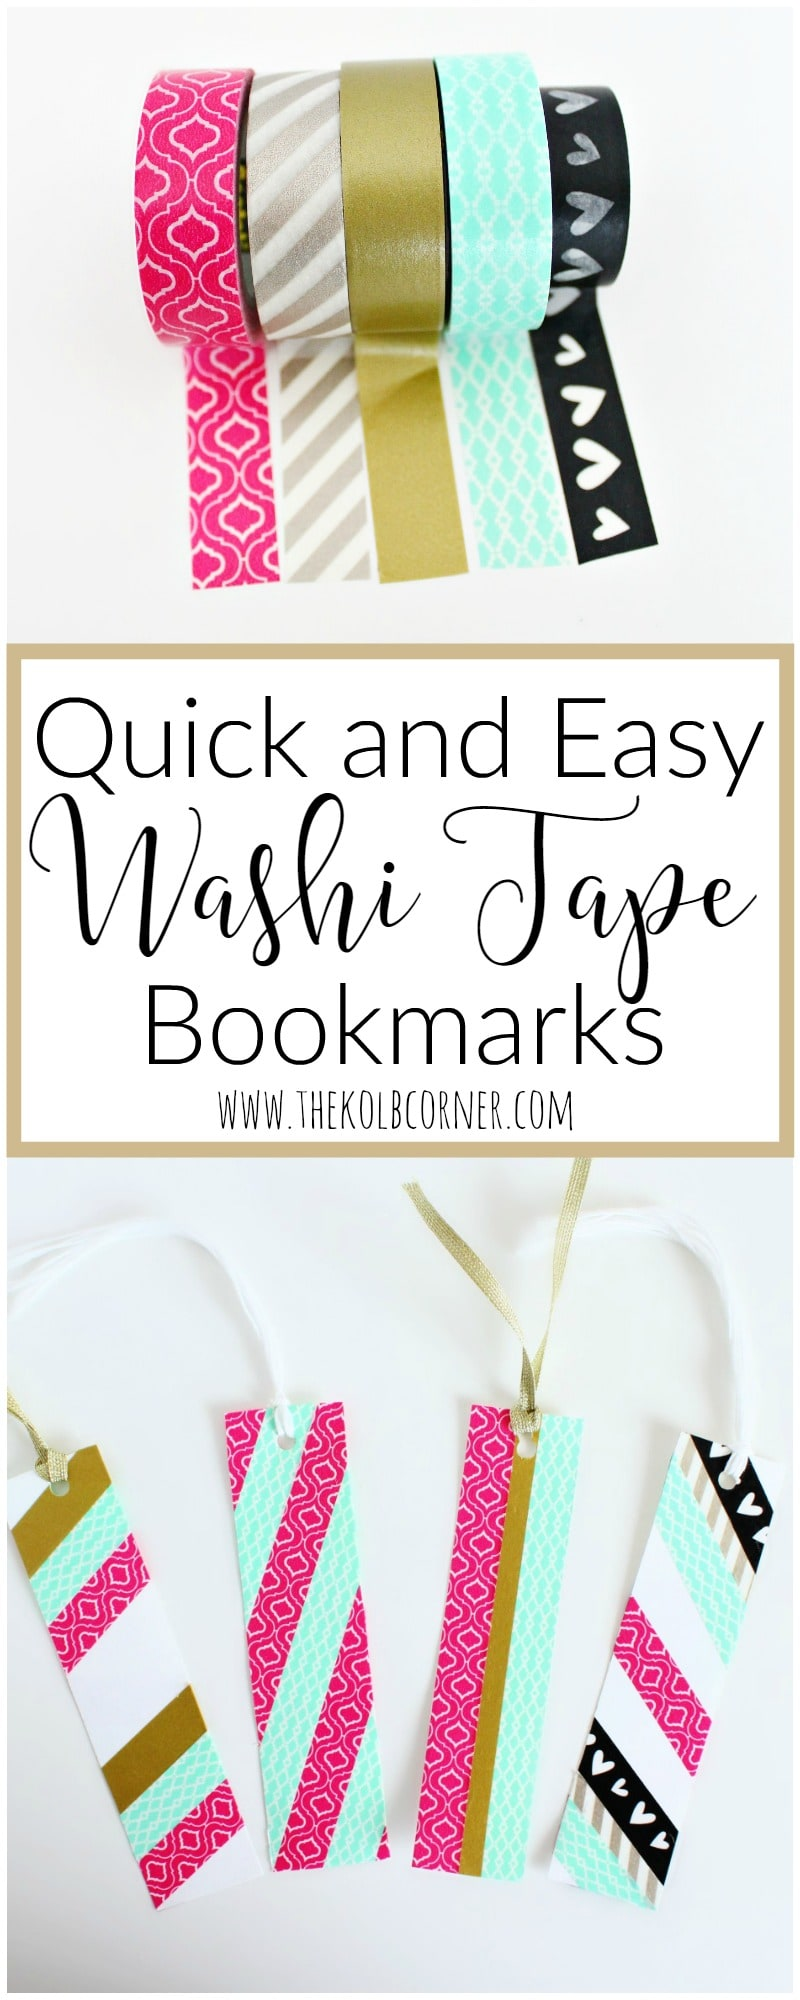 Washi Tape Bookmarks Pin